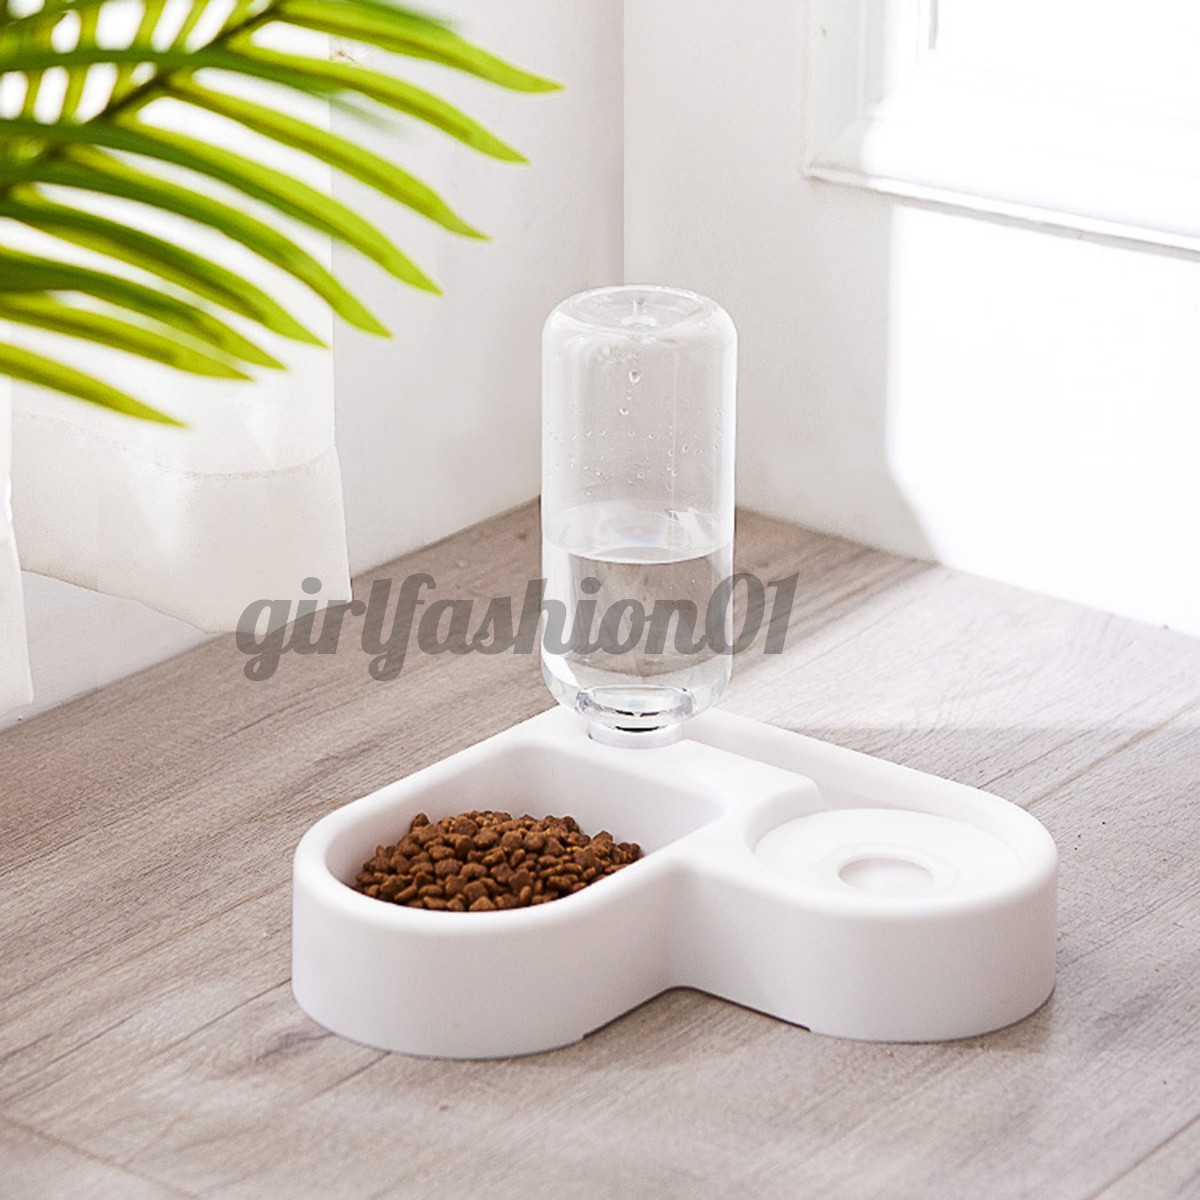 Automatic Pet Dog Cat Drink Water Dispenser Feeder Food 2 Bowl Dish Room Corner Space Saving For Pets Health Foods Clean Shopee Brasil